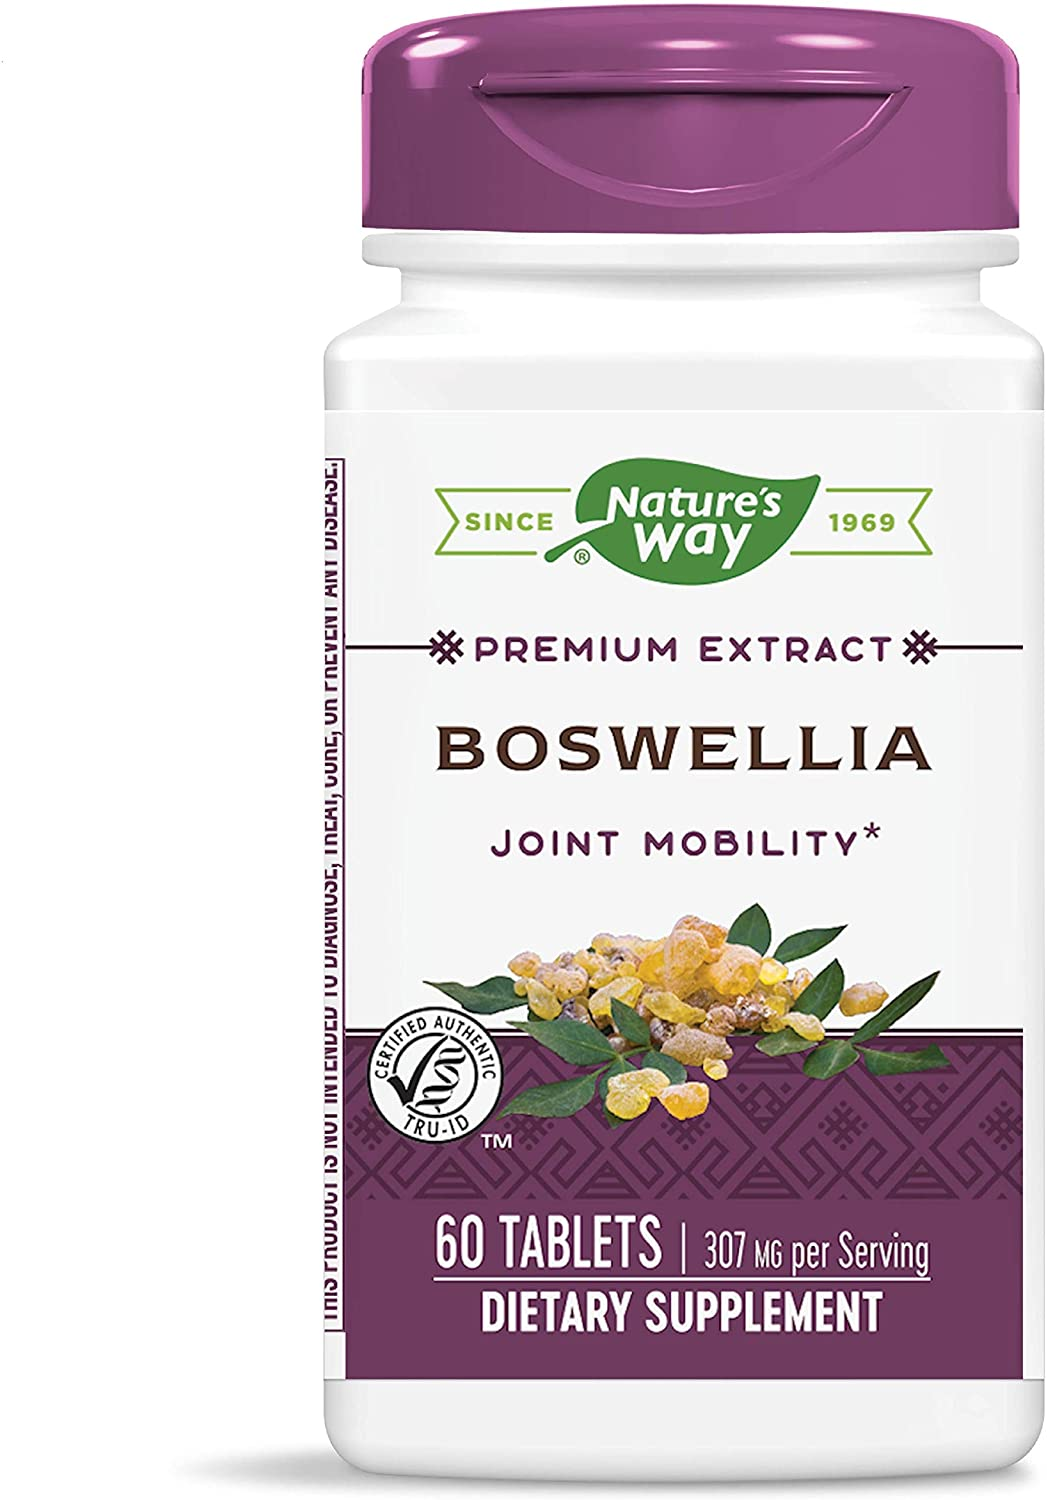 Natures Way Standardized Boswellia, 307 mg per serving, 40% Boswellic Acids per serving, TRU-ID Certified, Vegetarian, 60 Tablets (Packaging May Vary)